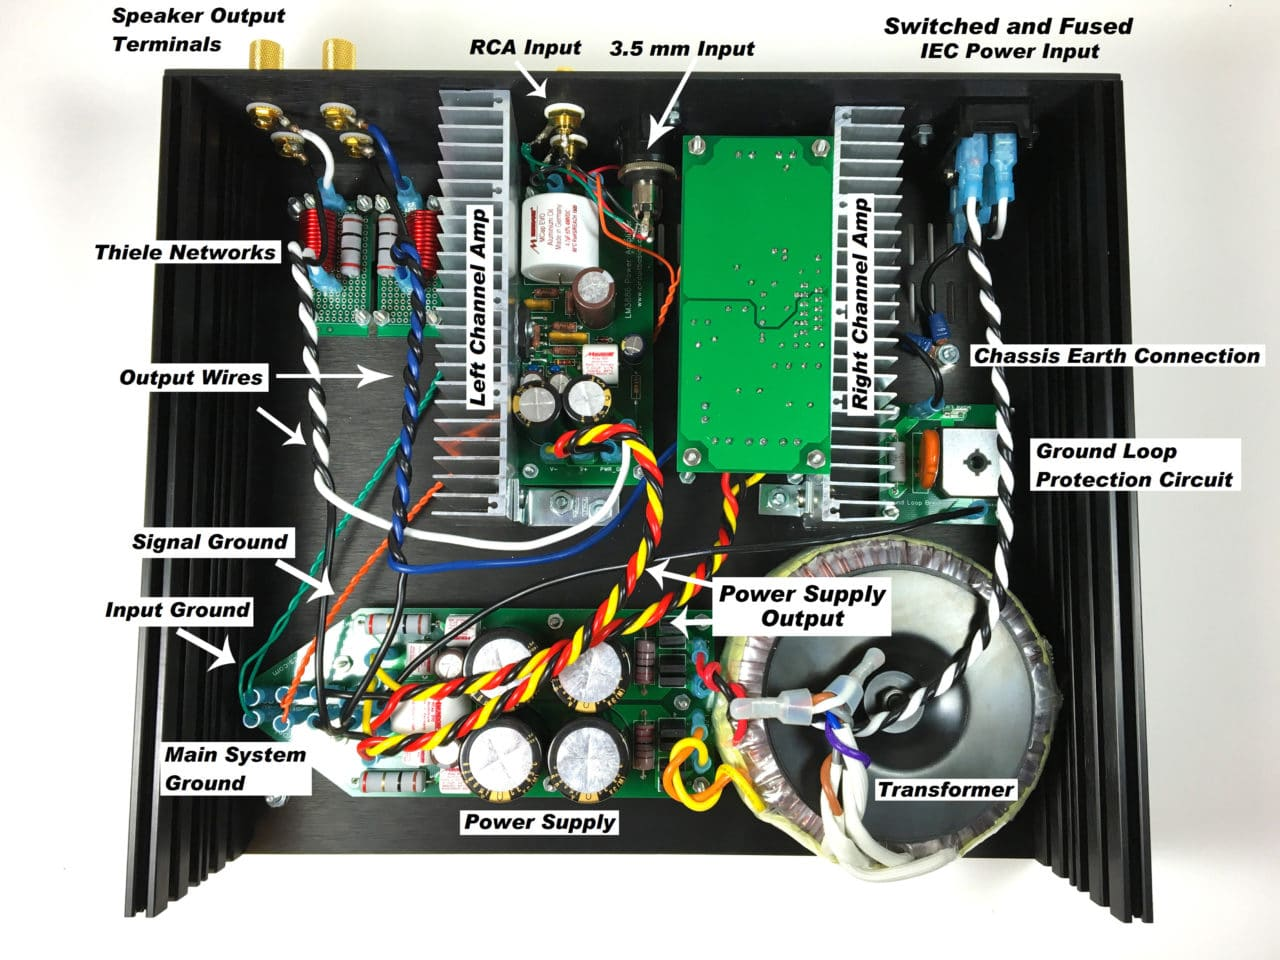 A Complete Guide To Design And Build Hi Fi Lm3886 Amplifier Wiring Capacitor 2 Amps In This Arrangement The Heat Sinks Provide Some Shielding From Thiele Networks Ac Wires Leading Transformer